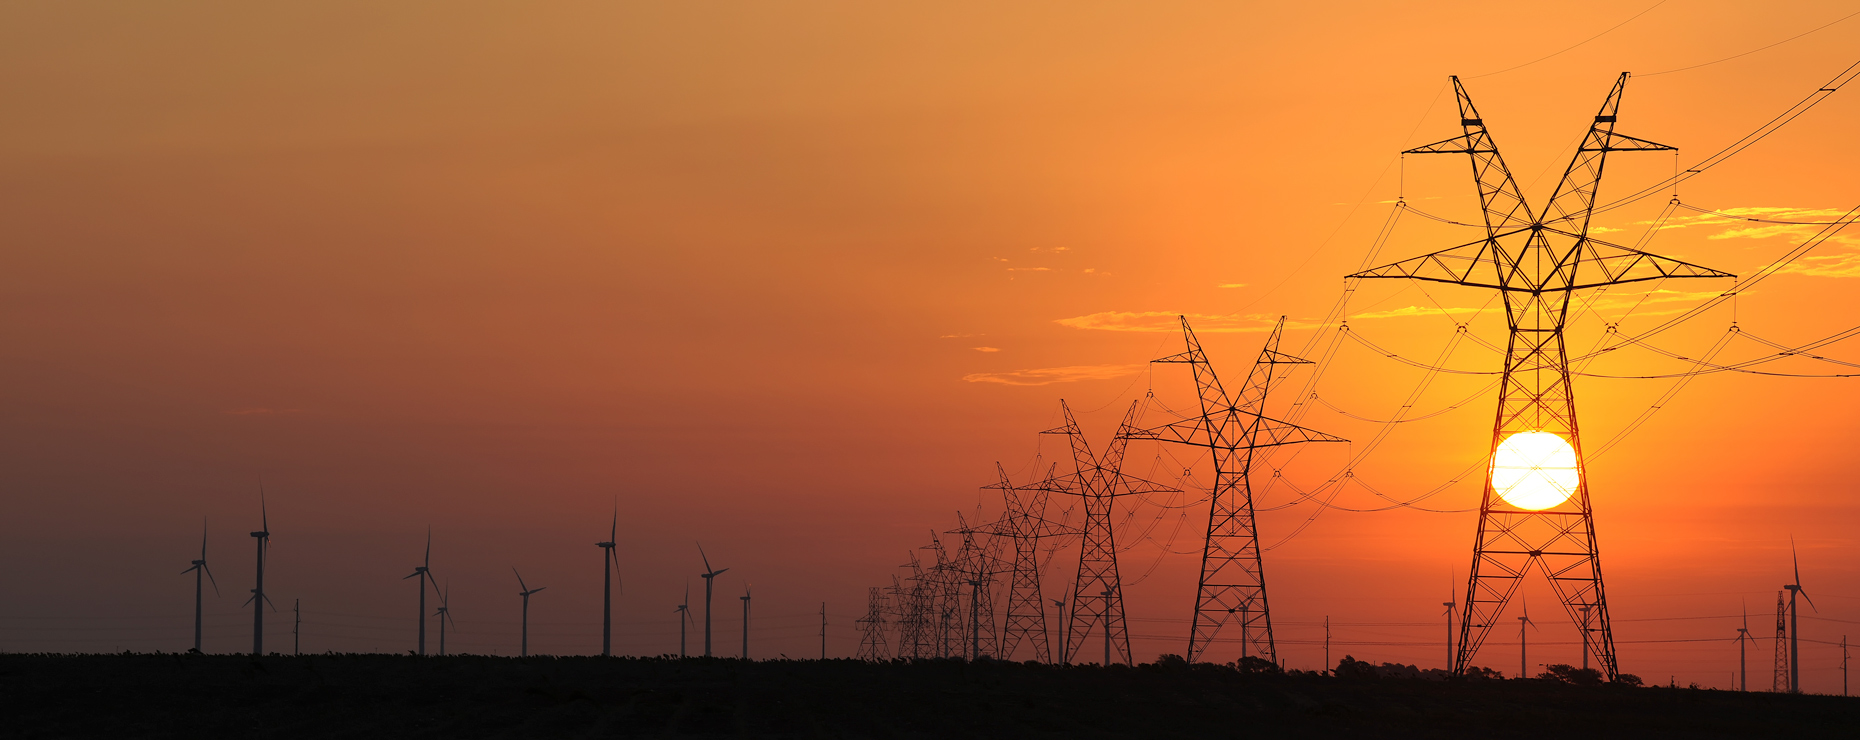 Electric transmission lines and wind turbines in west Texas by industrial photographer Kevin Brown, for Oncor.